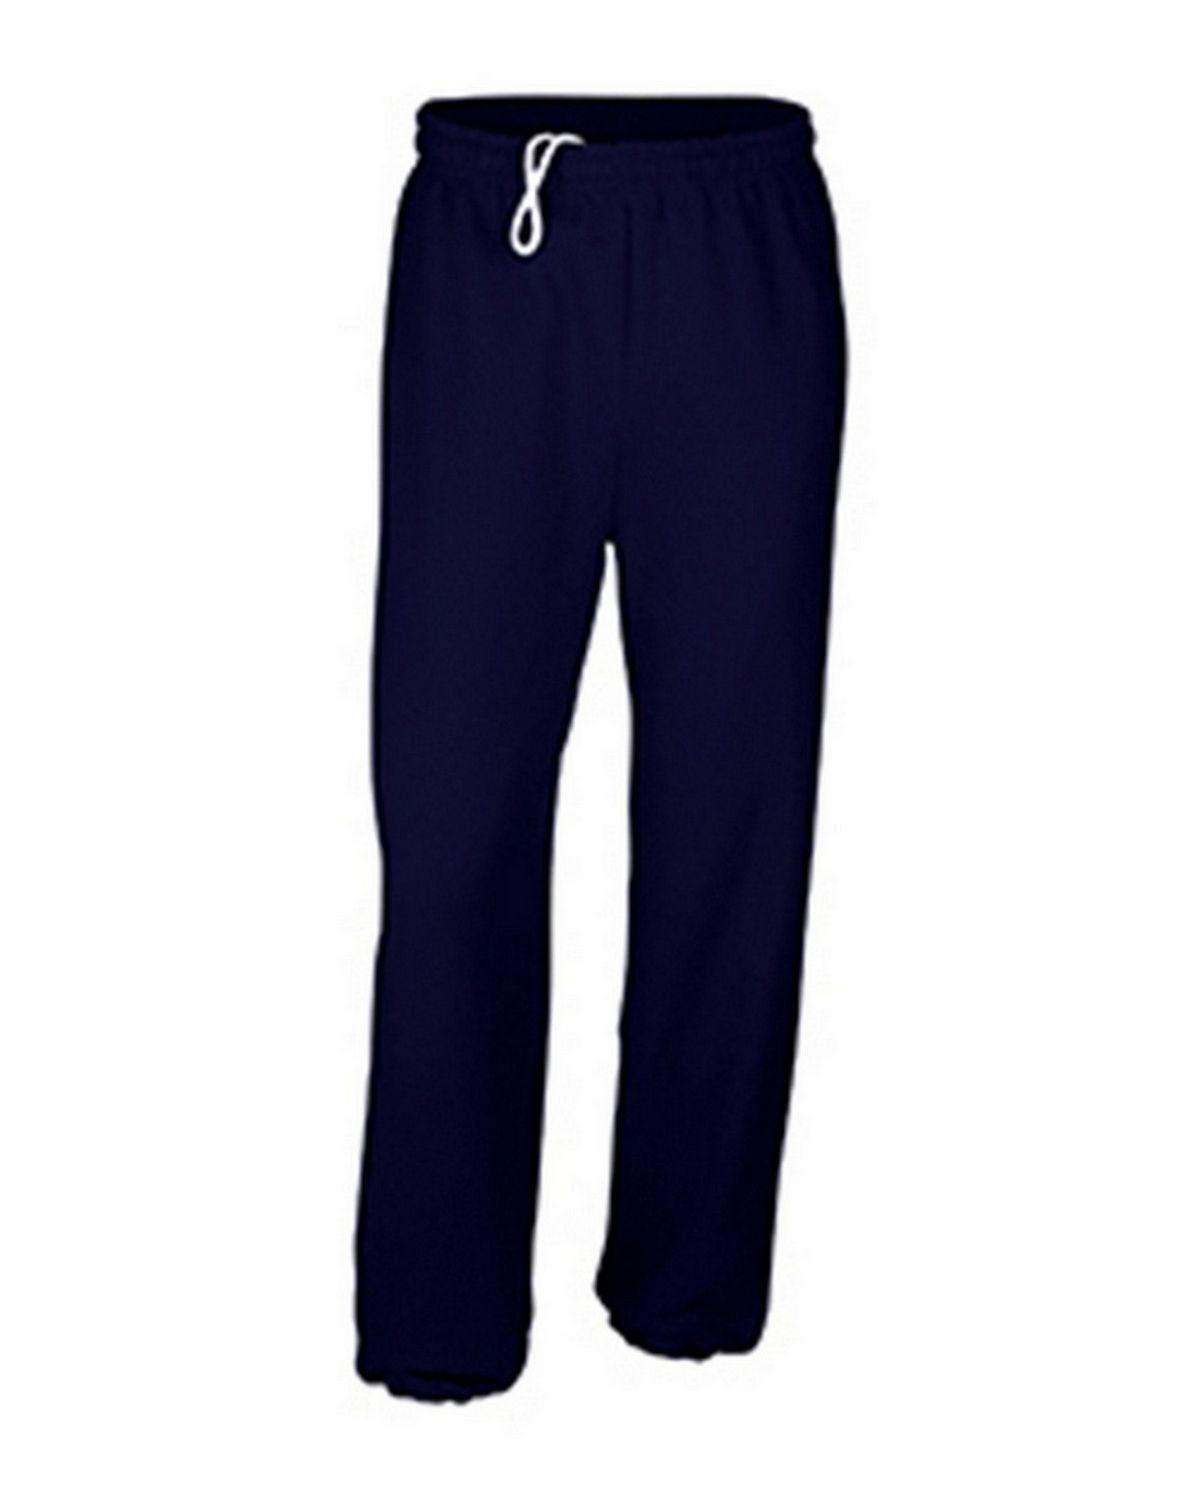 Gildan G18200B Heavy Blend Youth Sweatpants - Navy - XL G18200B